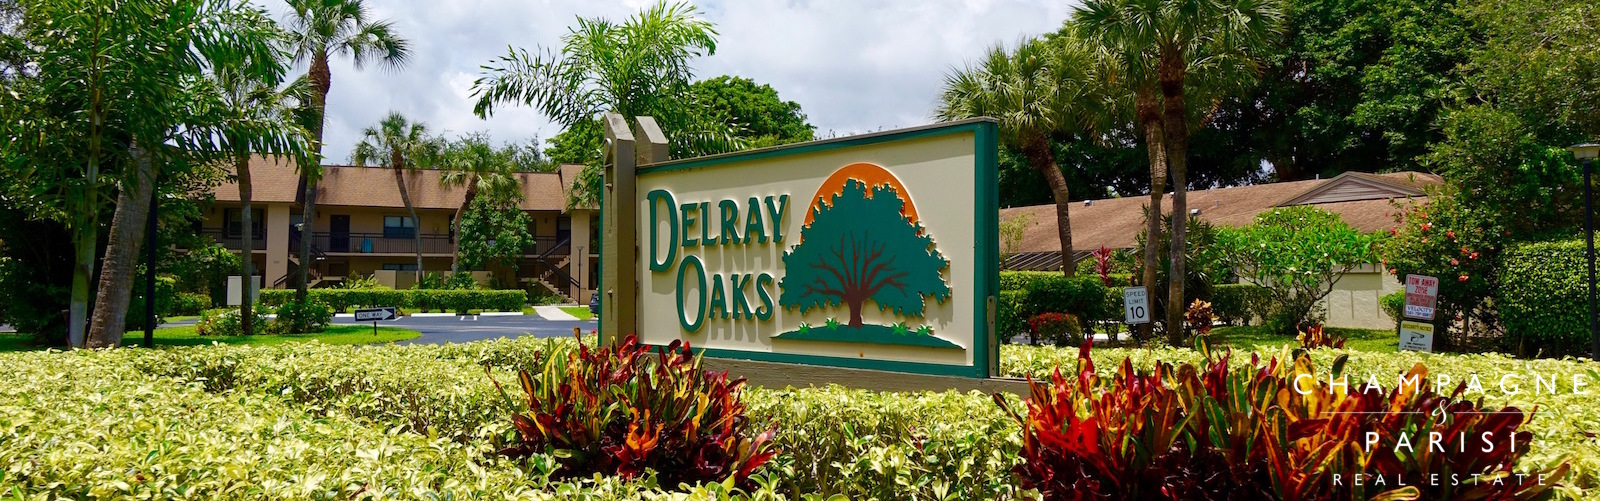 delray oaks townhomes for sale